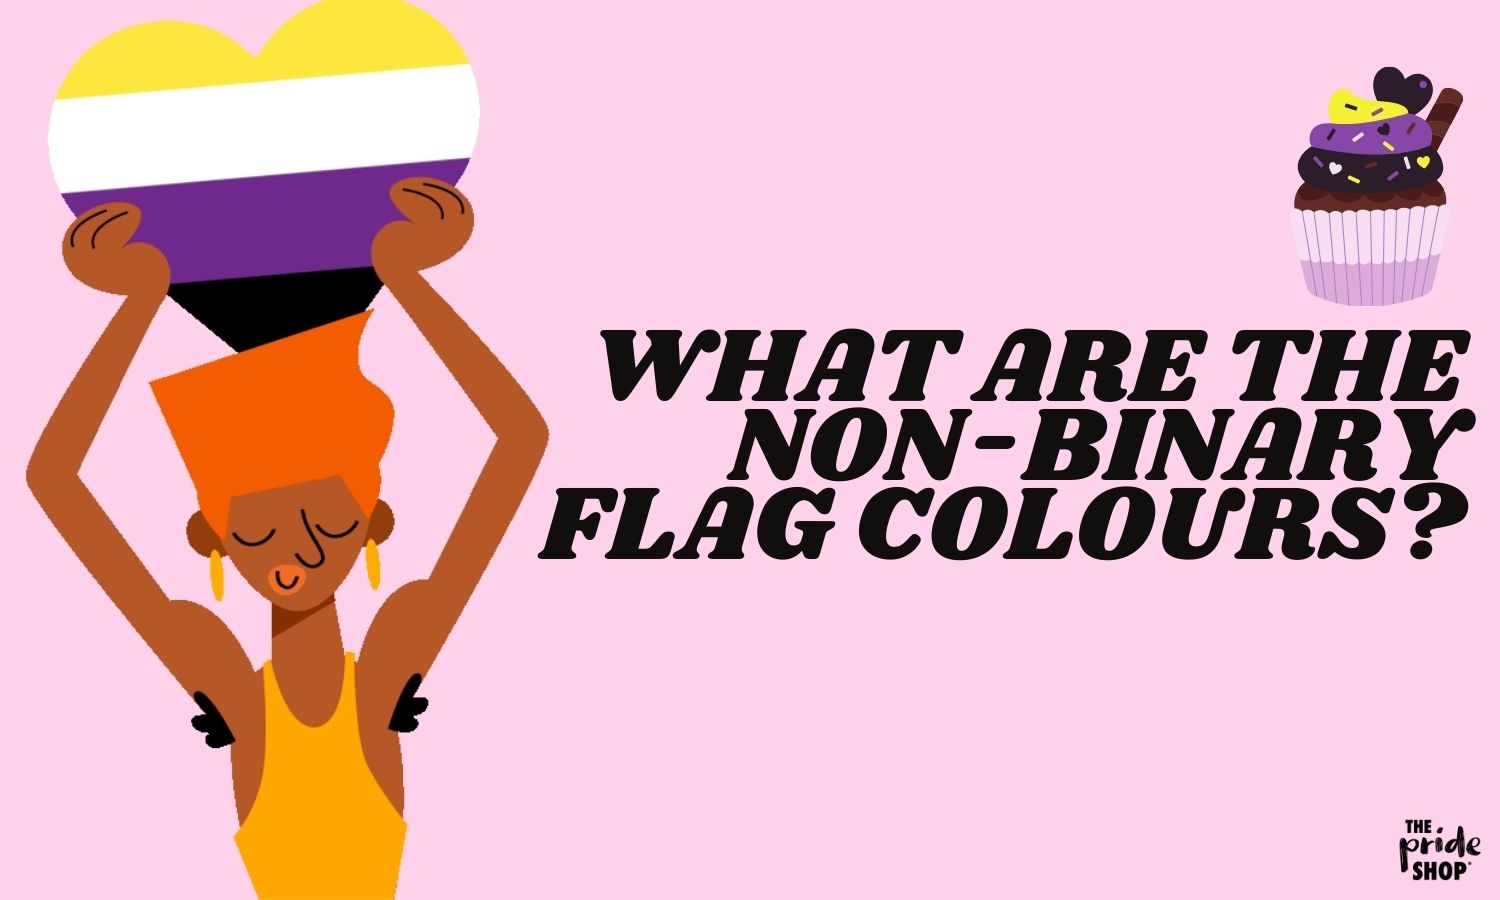 What colours are in the Non Binary flag?